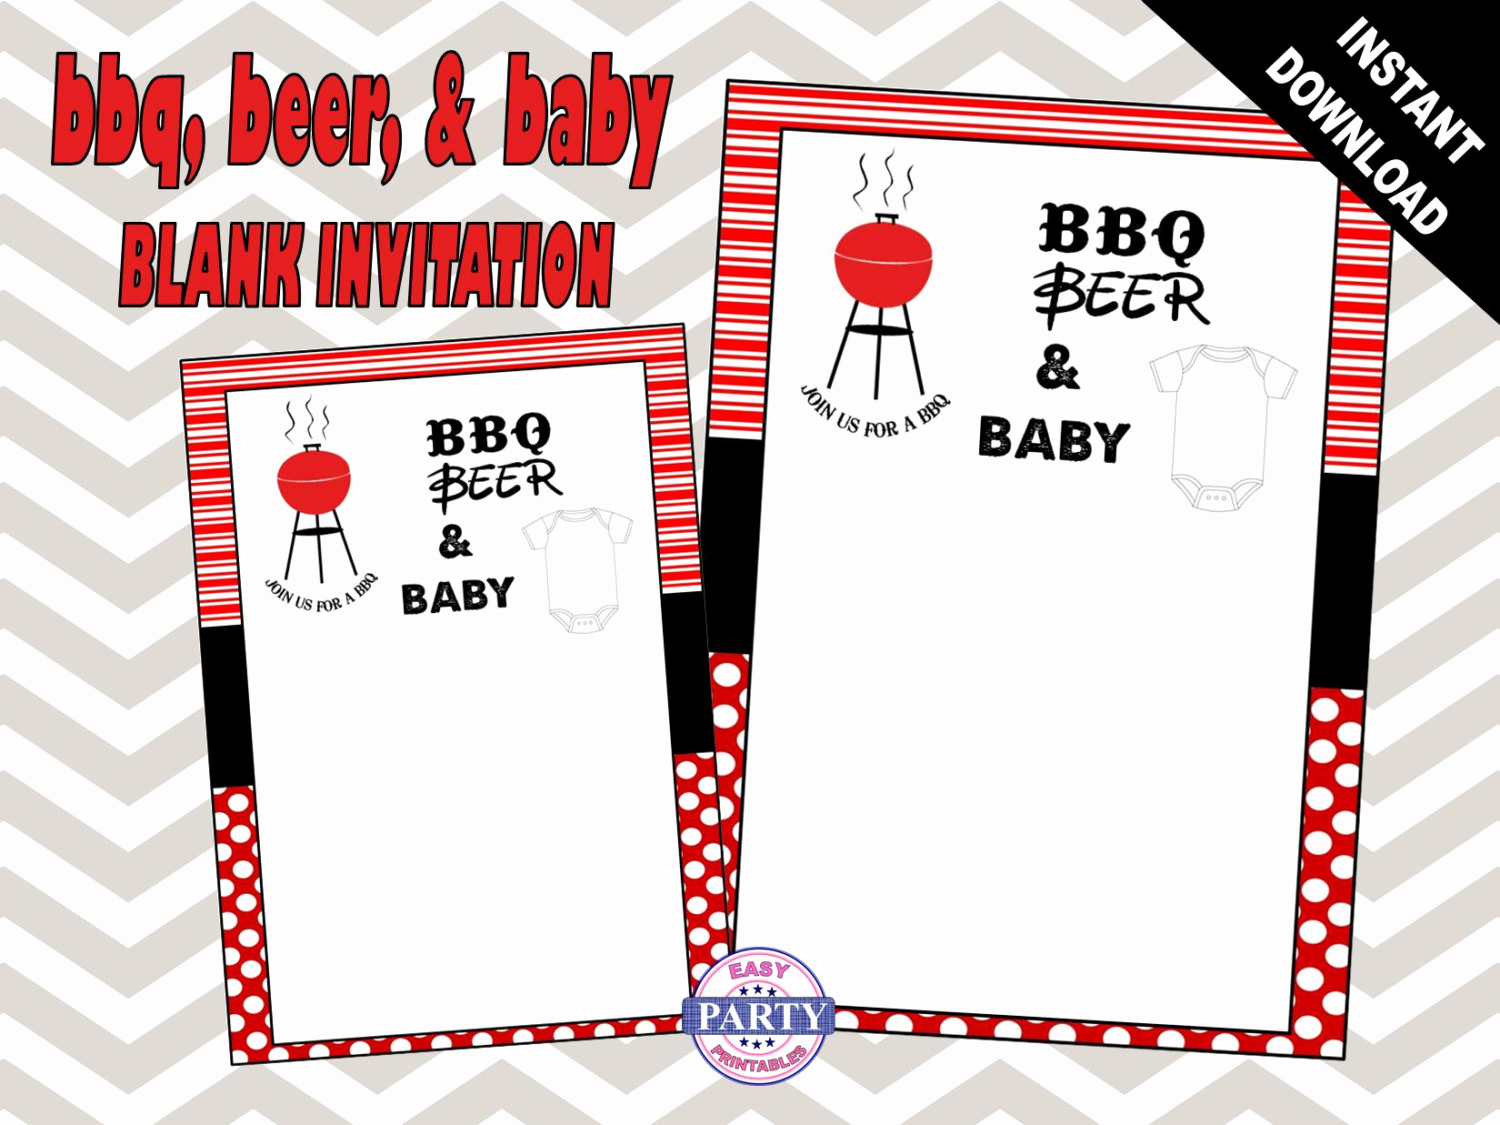 Baby Q Invitation Template Fresh Bbq and Beer Blank Invitation Template Bbq by